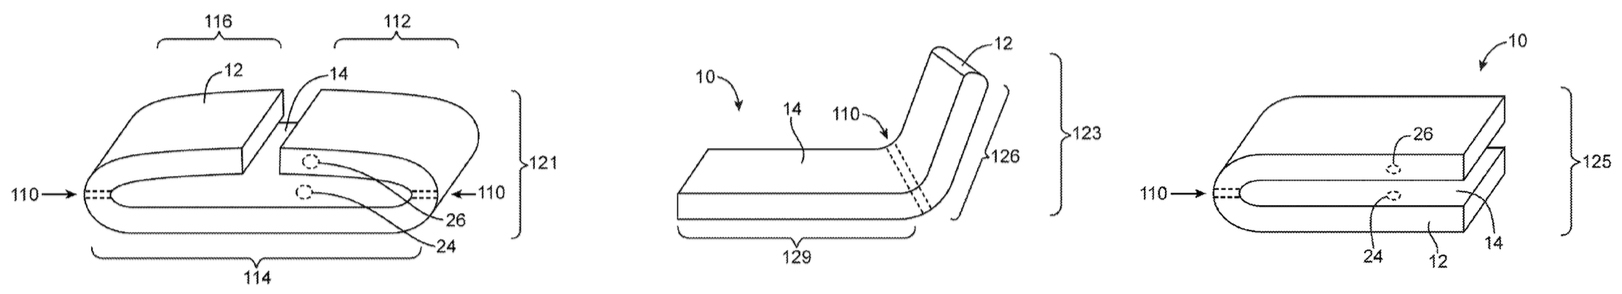 flexible-iphone-patent-configurations